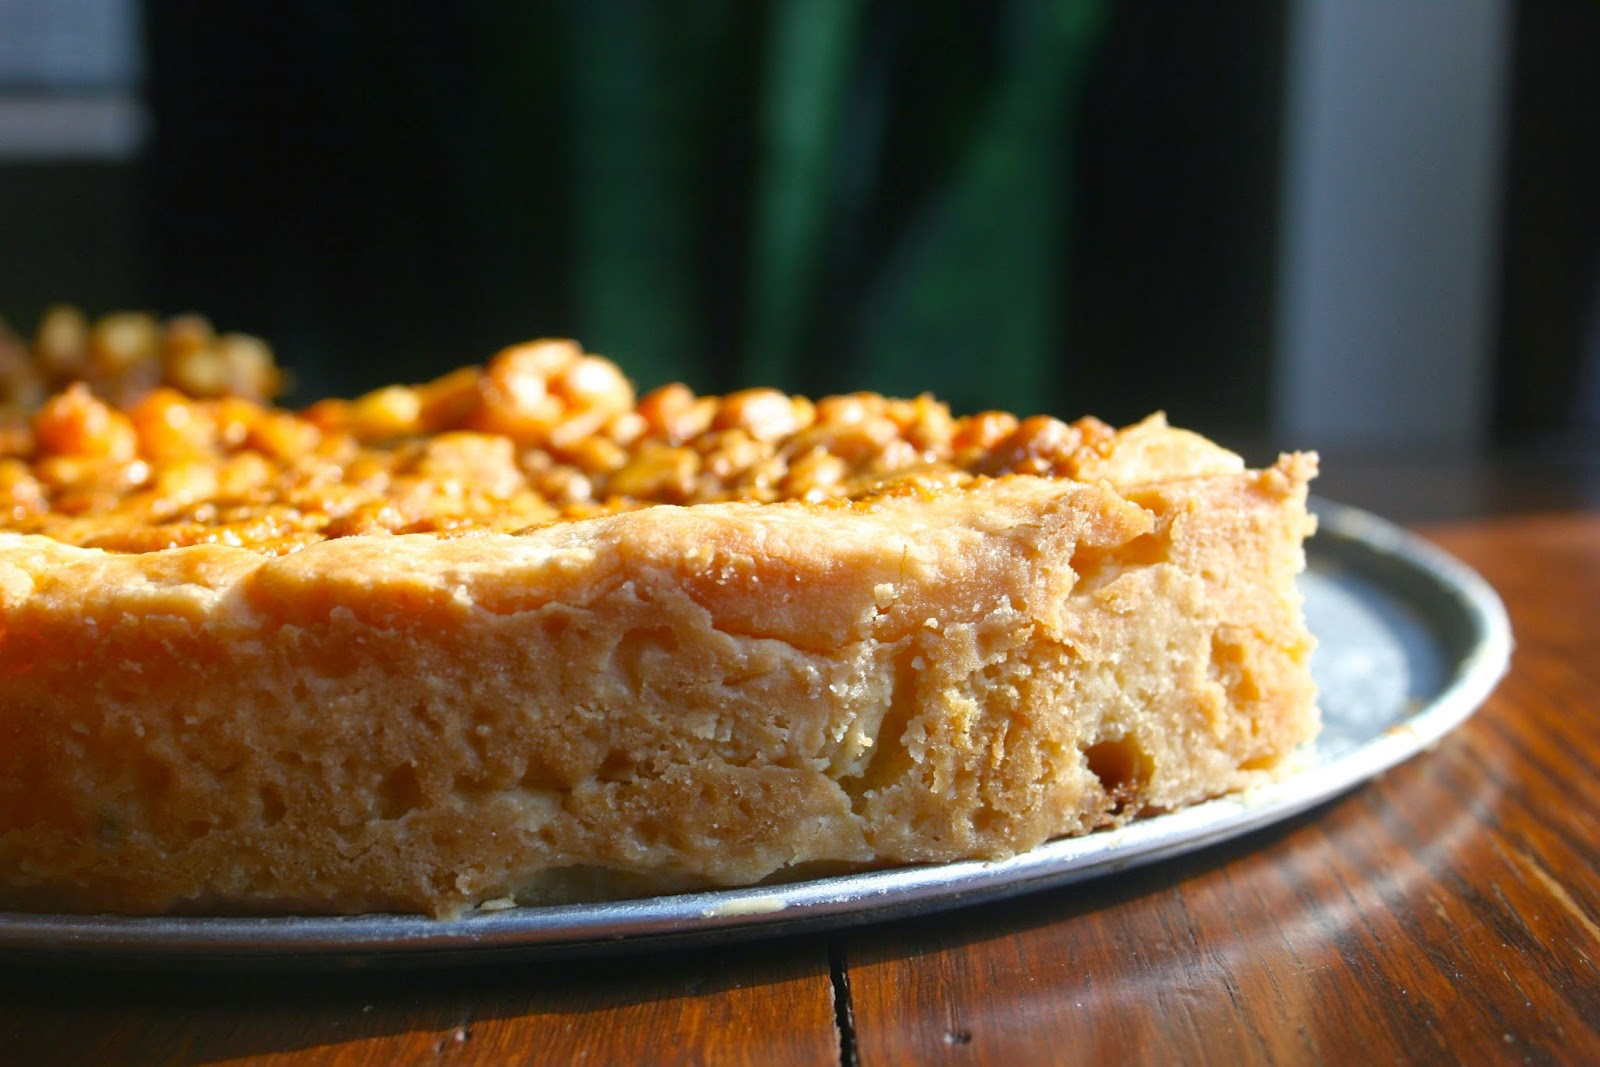 Pine Nut and Honey Tart Crust, Side View